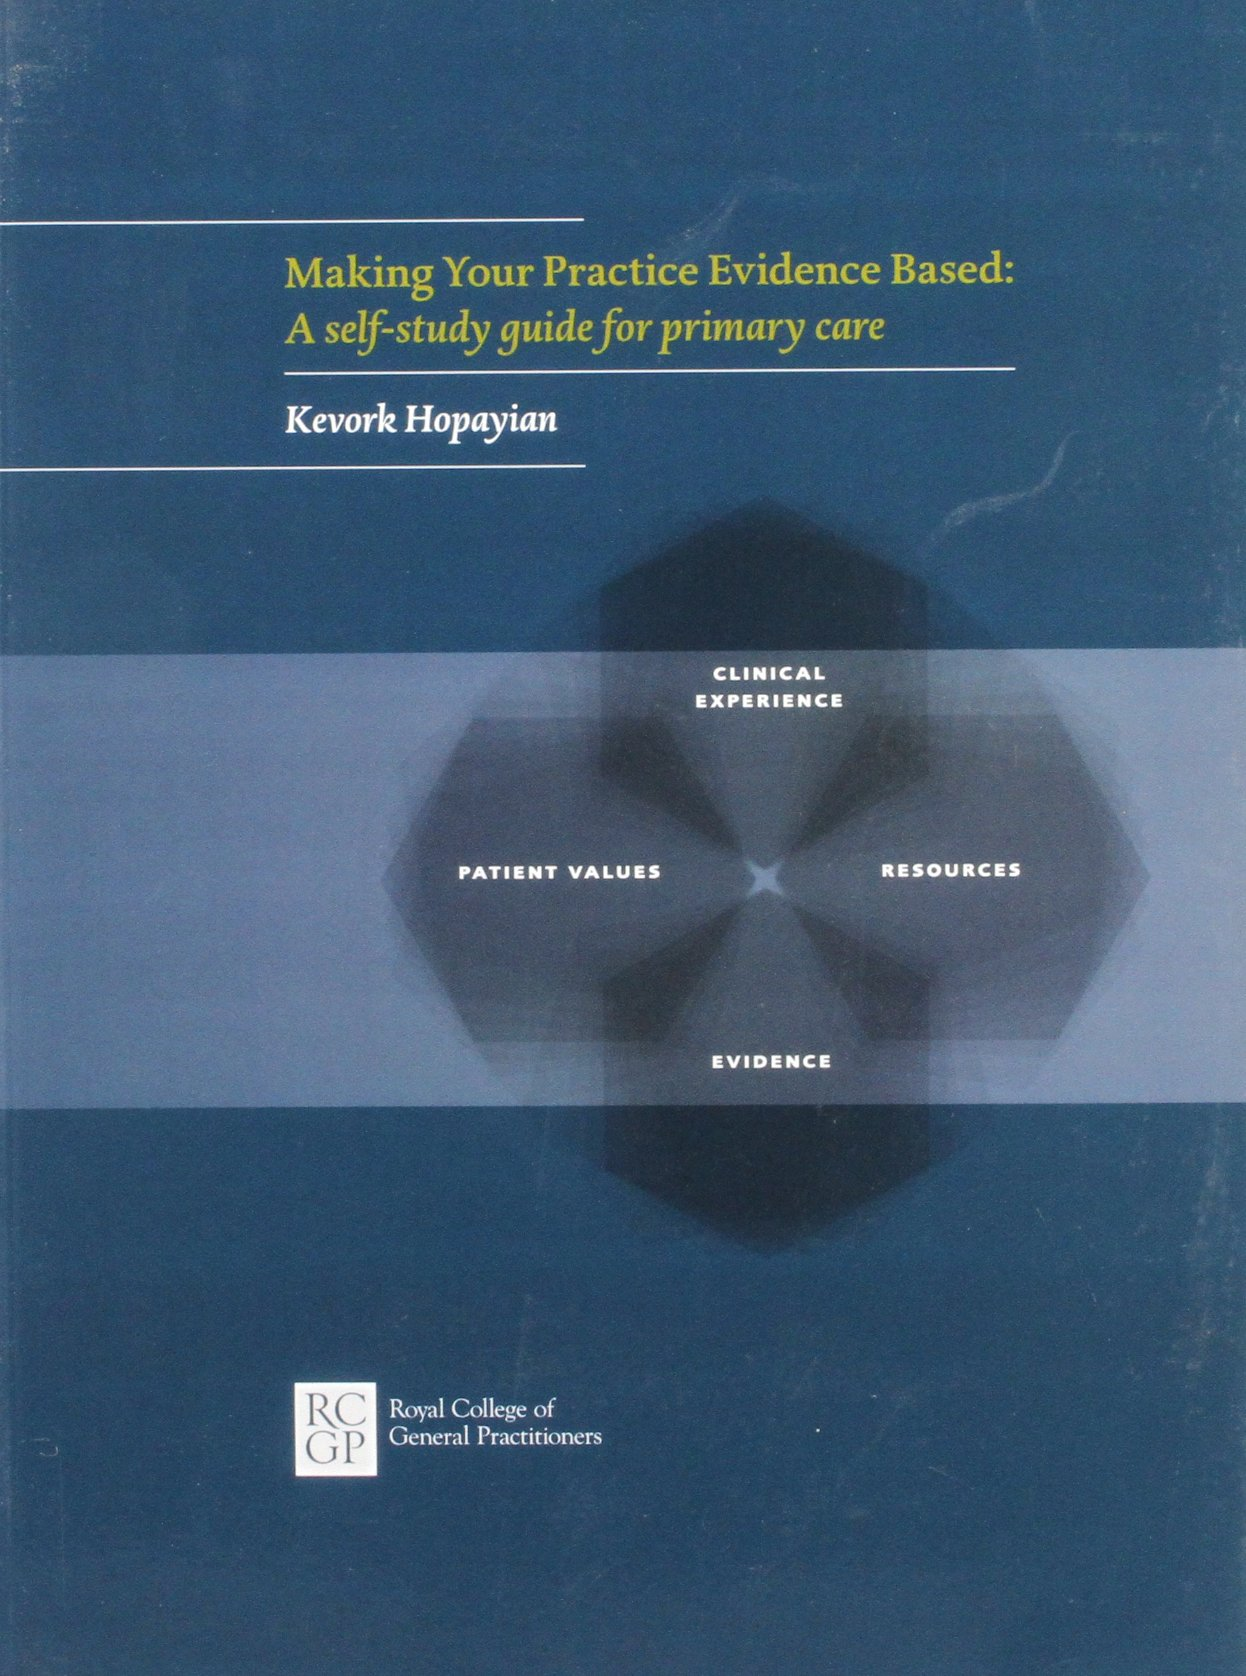 Making Your Practice Evidence Based: A Self-Study Guide For Primary Care PDF